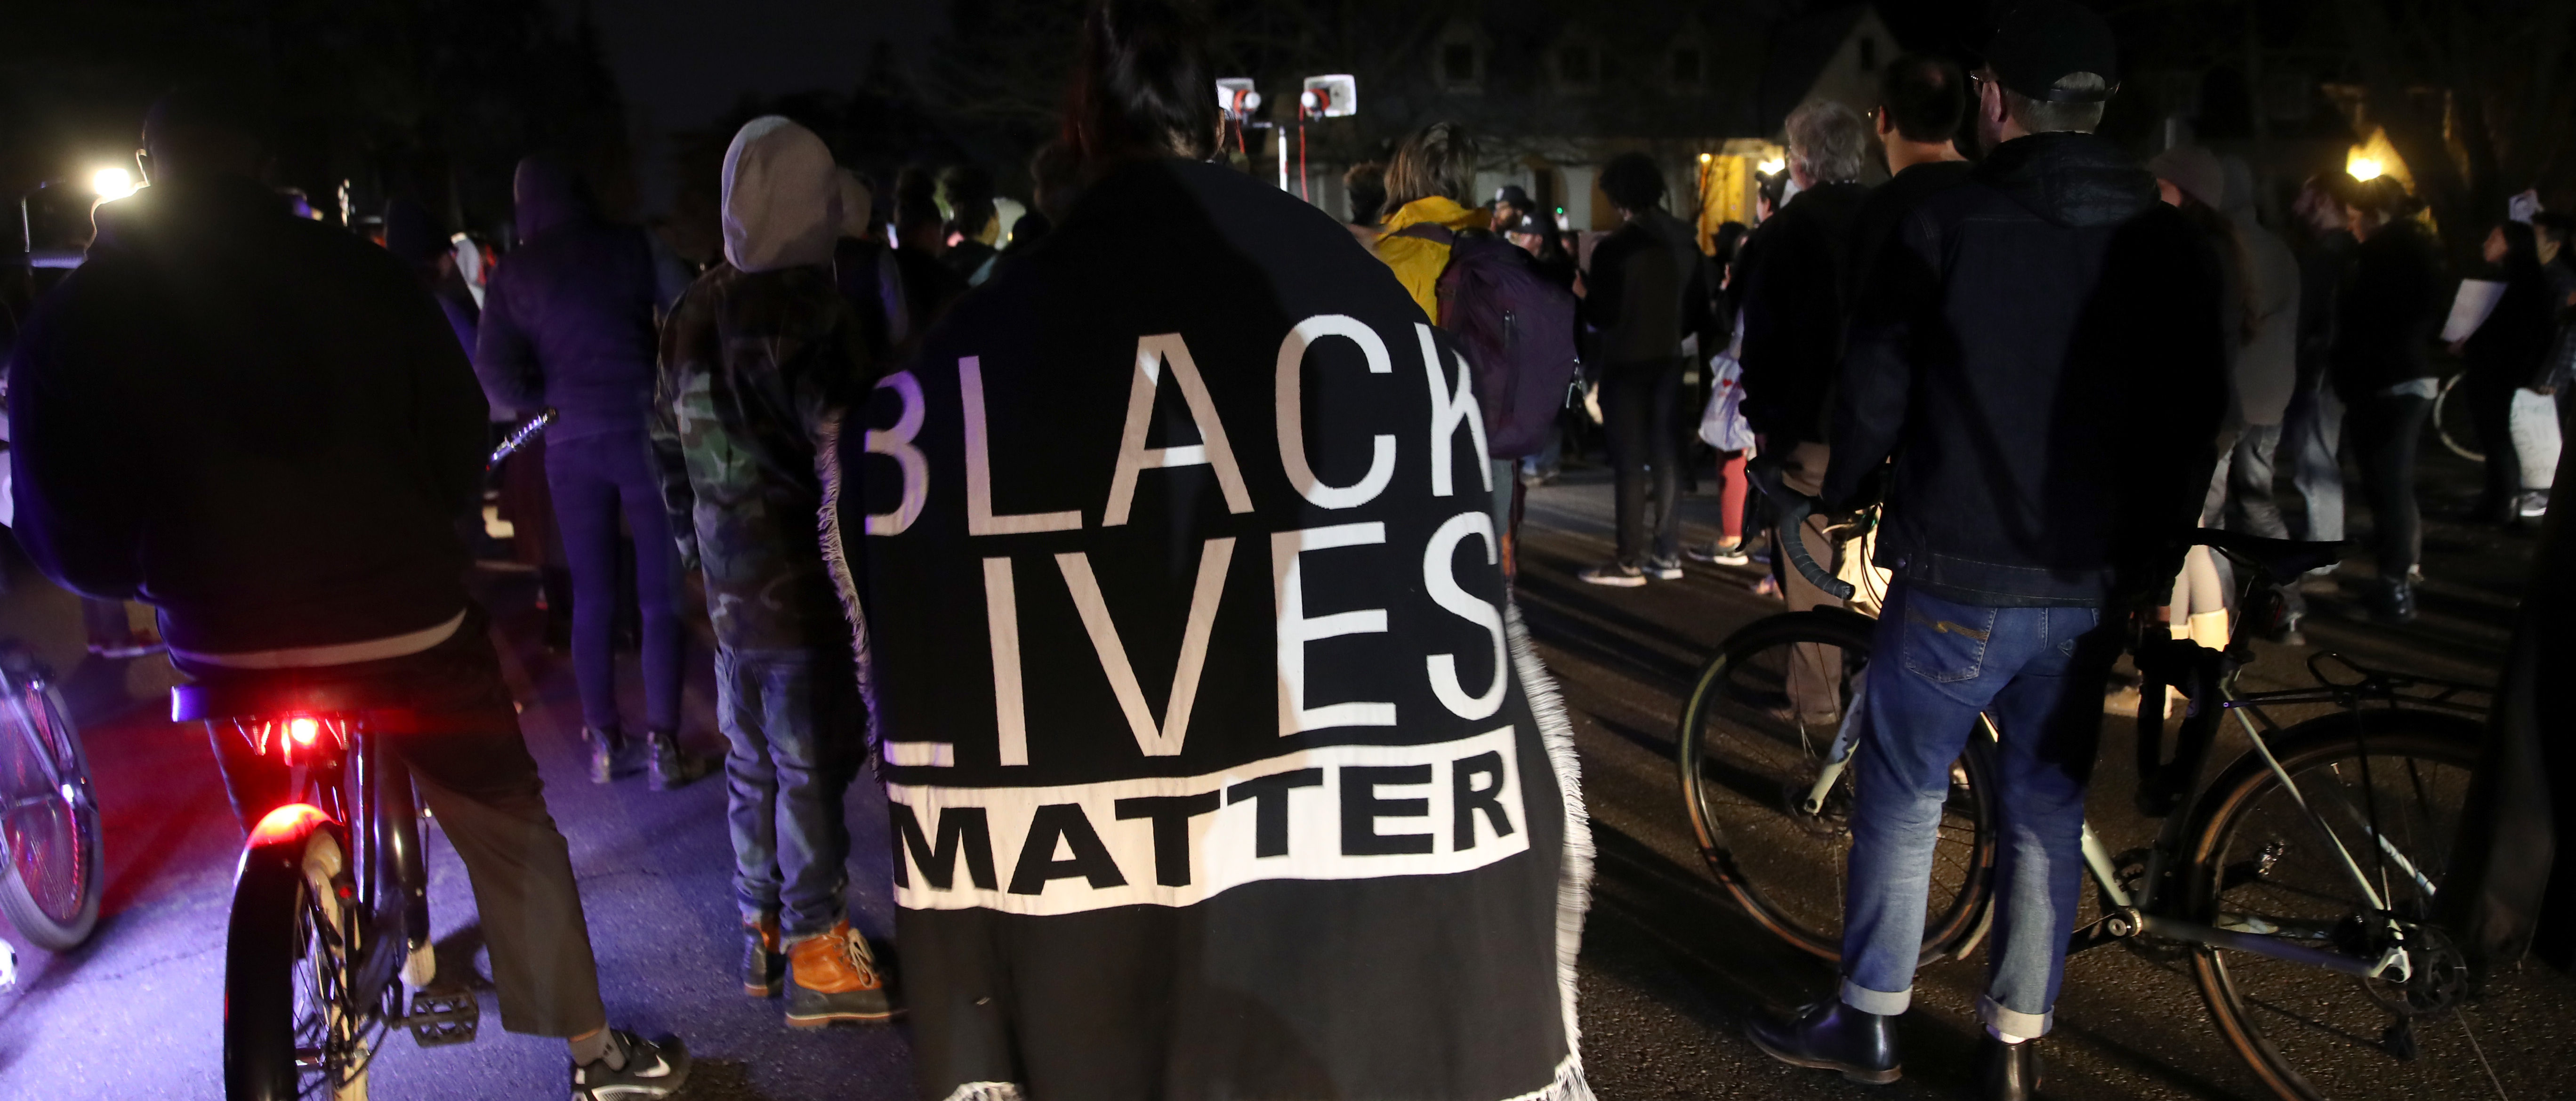 SACRAMENTO, CALIFORNIA - MARCH 04: Black Lives Matter protesters march through the streets as they demonstrate the decision by Sacramento District Attorney to not charge the Sacramento police officers who shot and killed Stephon Clark last year on March 04, 2019 in Sacramento, California. Dozens of Black Lives Matter protesters demonstrated against the decision by Sacramento District Attorney Anne Marie Schubert to not charge two police officers who shot and killed Stephon Clark, an unarmed black man. (Photo by Justin Sullivan/Getty Images)